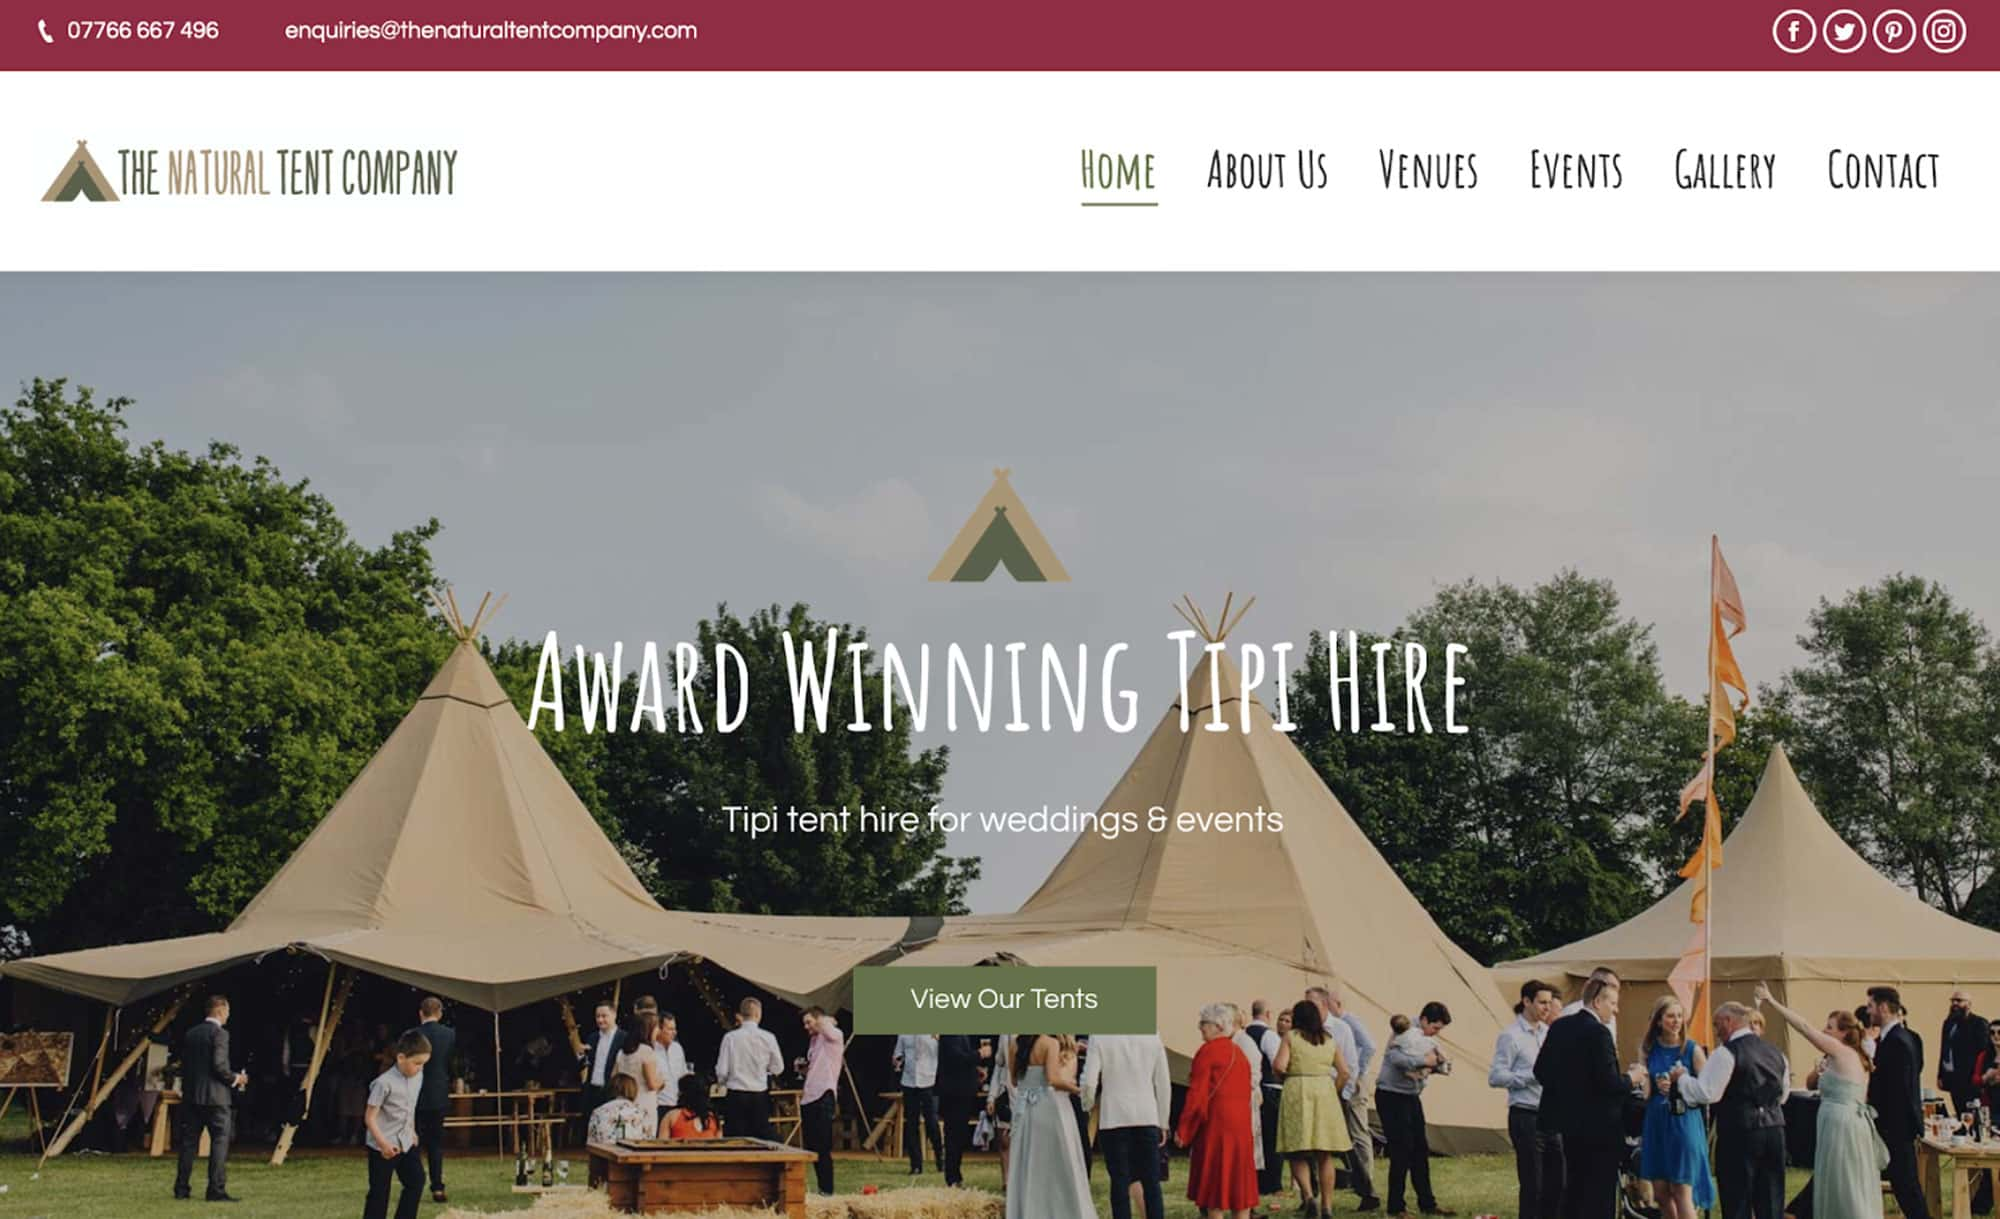 The Natural Tent Company website homepage